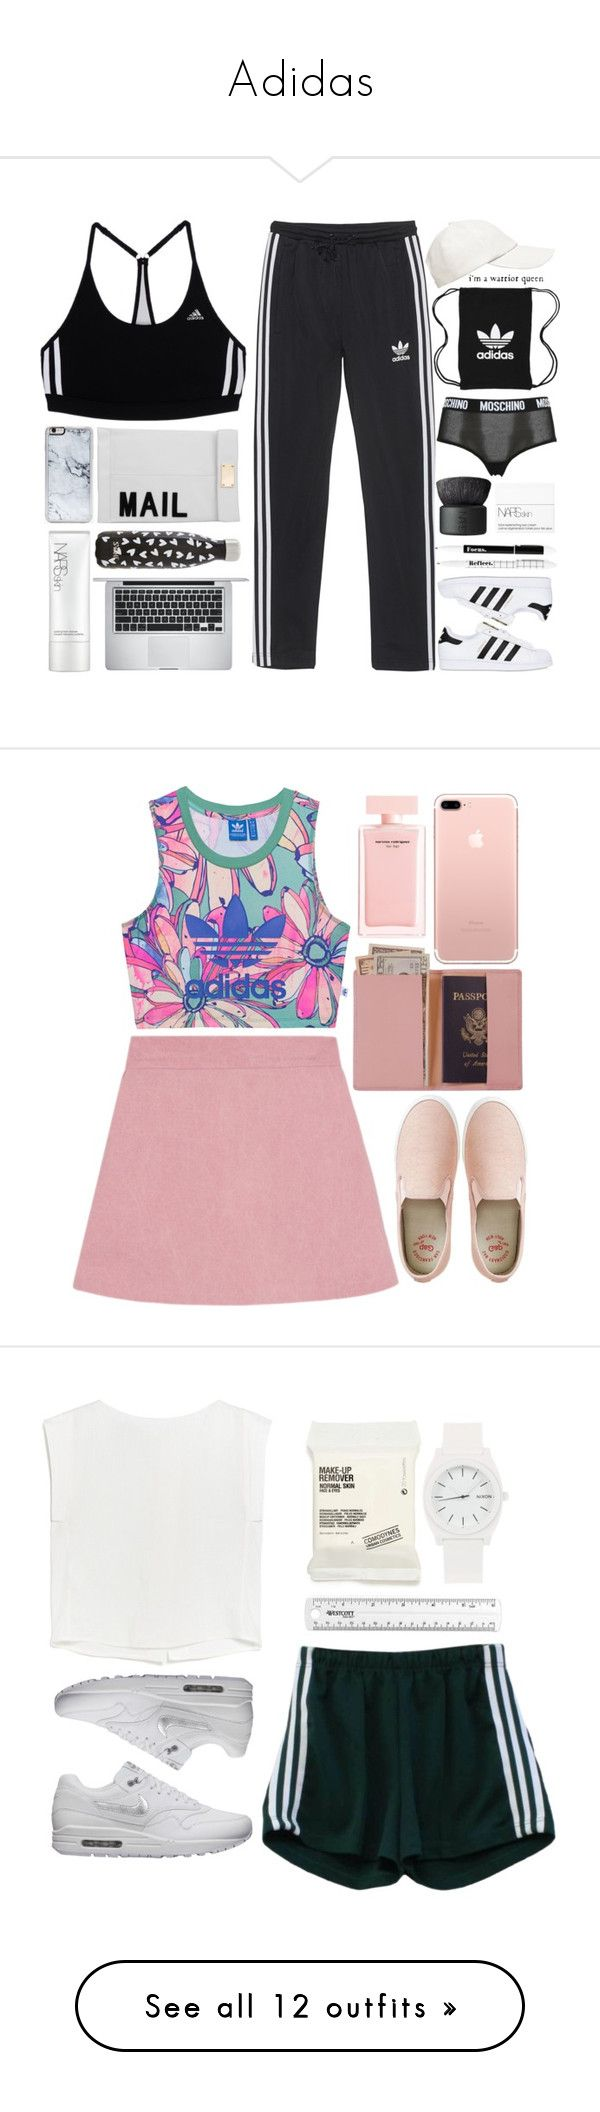 """Adidas"" by andreiasilva07 ❤ liked on Polyvore featuring adidas, adidas Originals, Witchery, Zero Gravity, Apple, Akira, Moschino, S'well, NARS Cosmetics and Royce Leather"